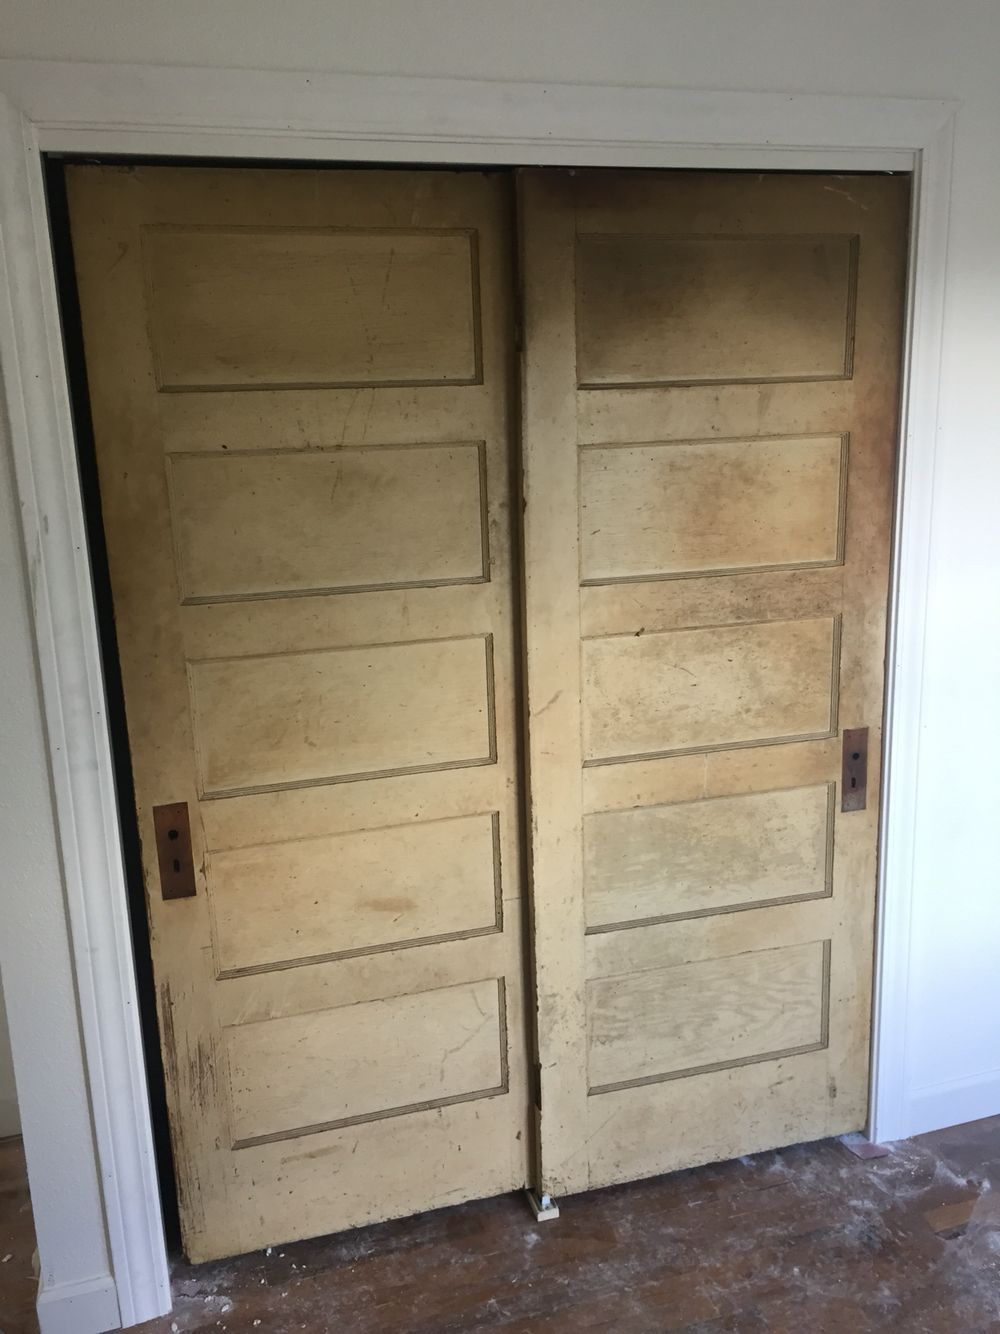 Cassie Used These Old 5 Panel Doors To Make Sliding Closet Doors❤ ❤️